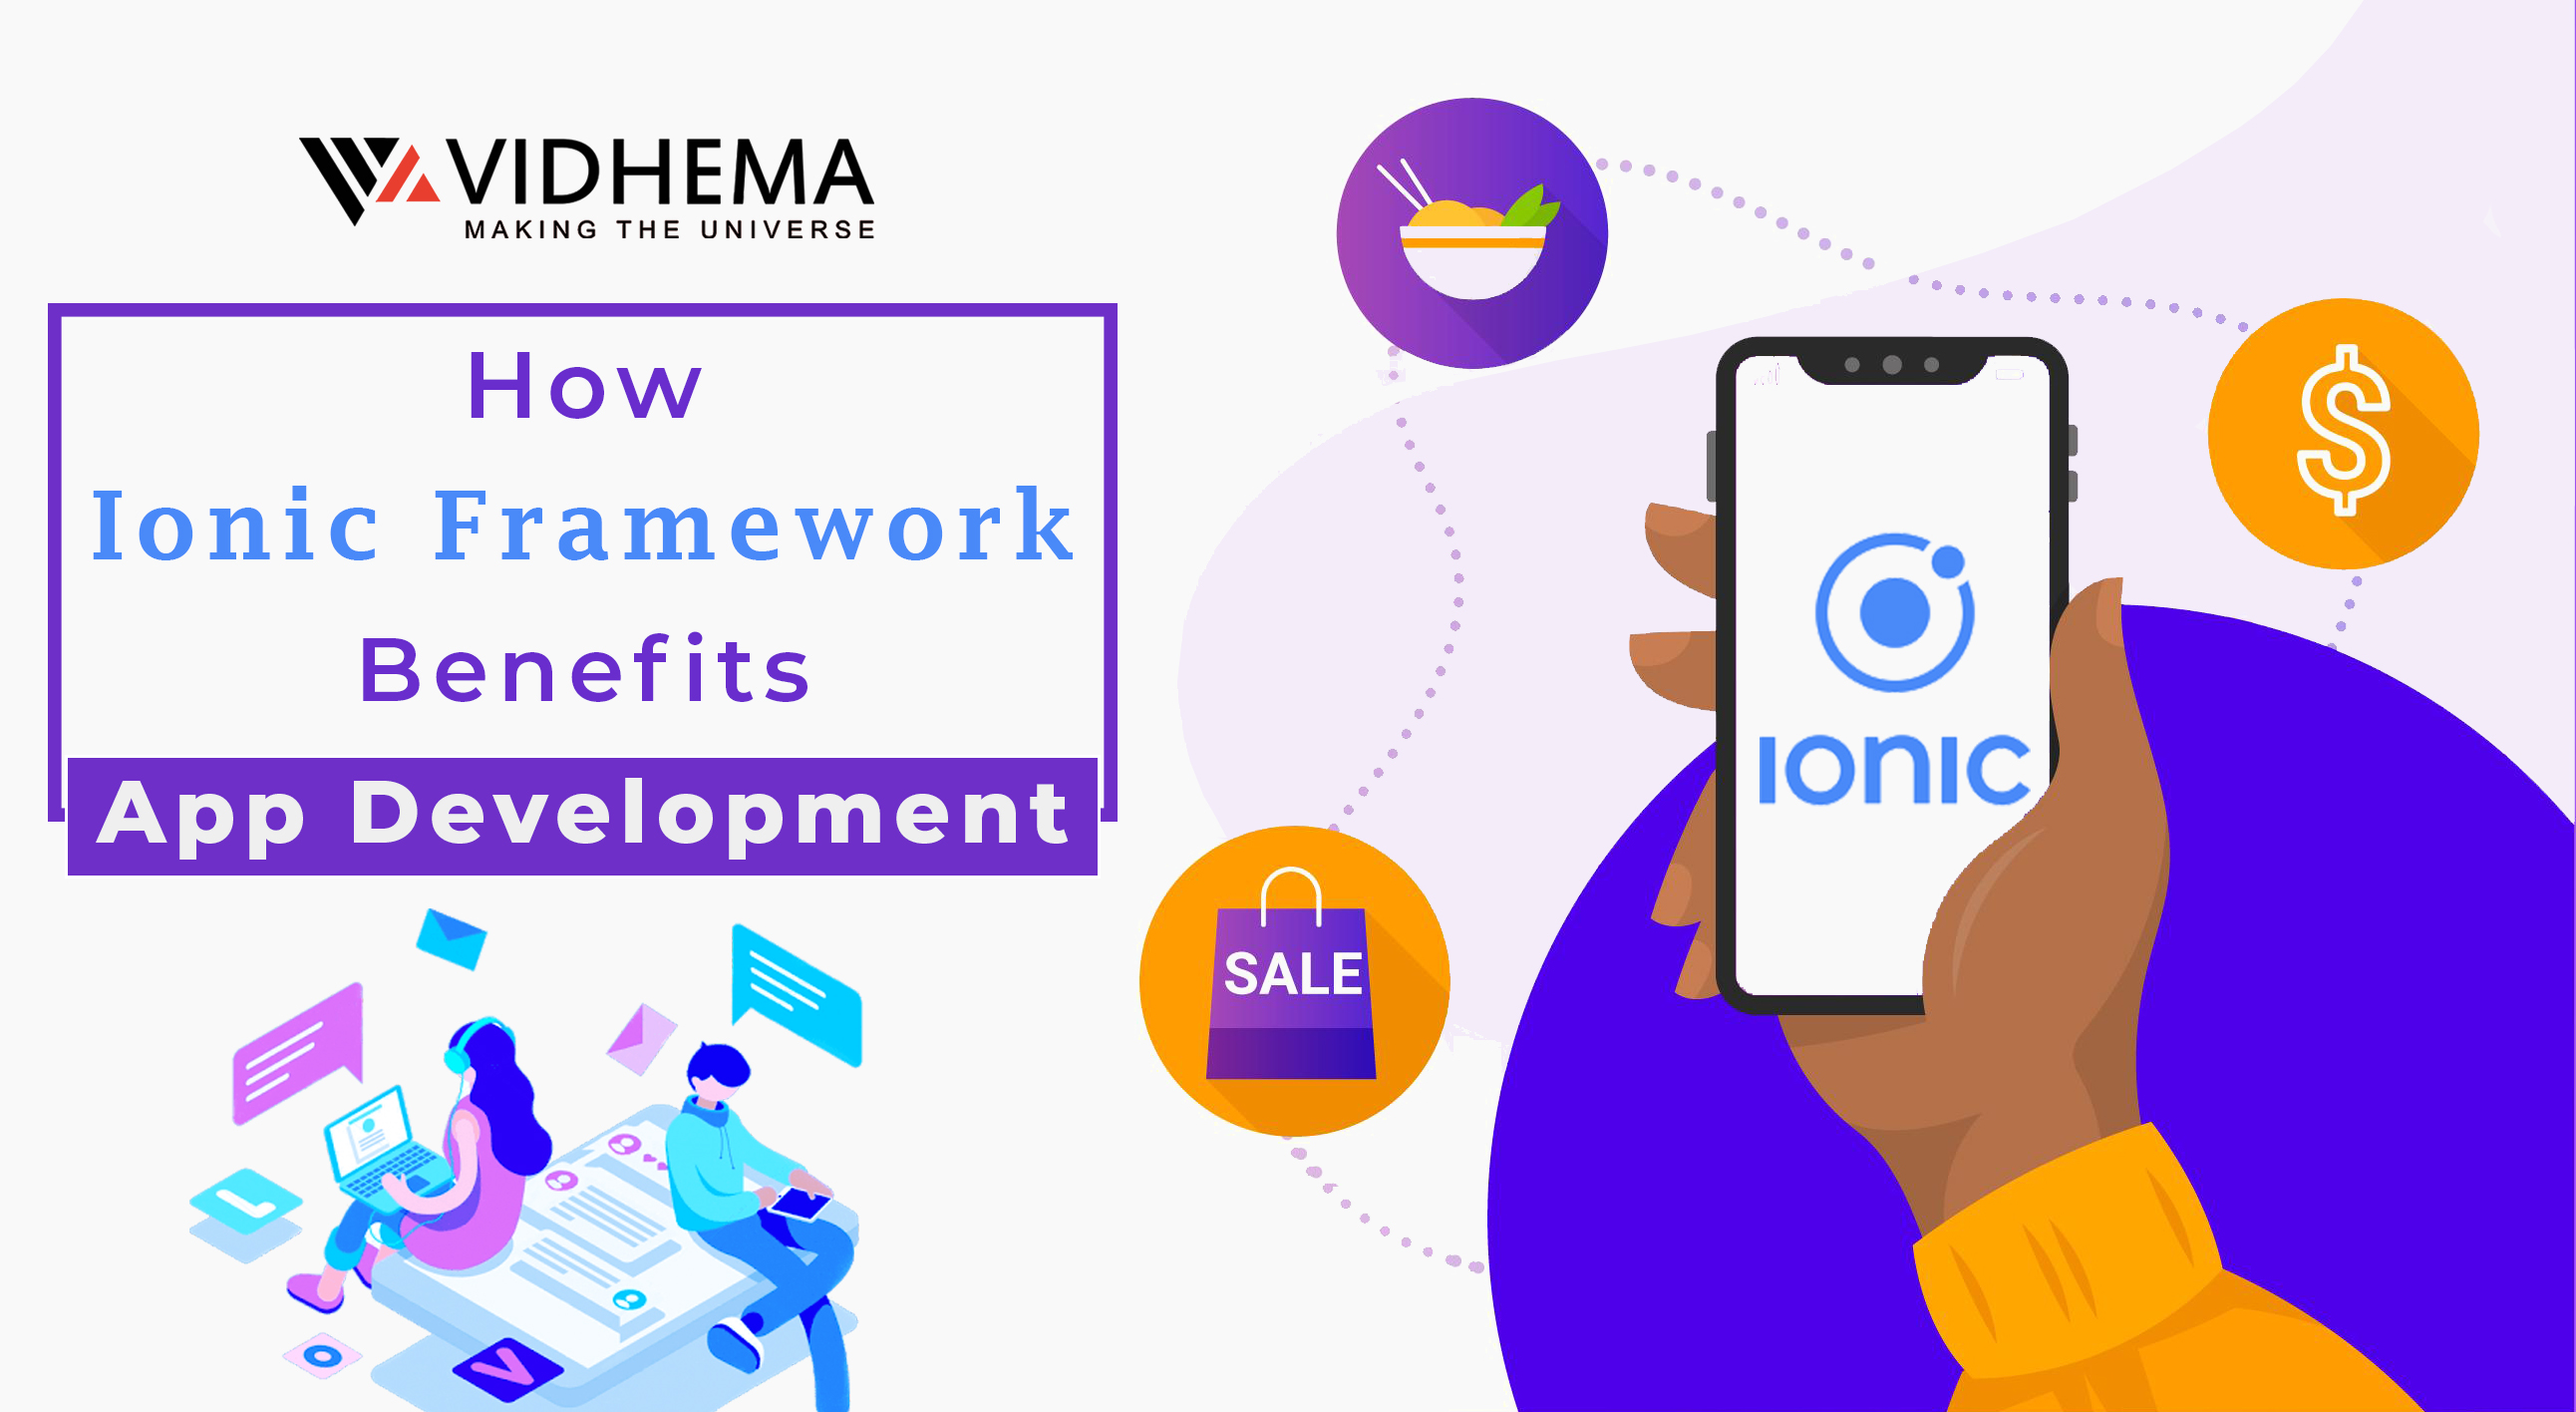 How Ionic Framework Benefits App Development?